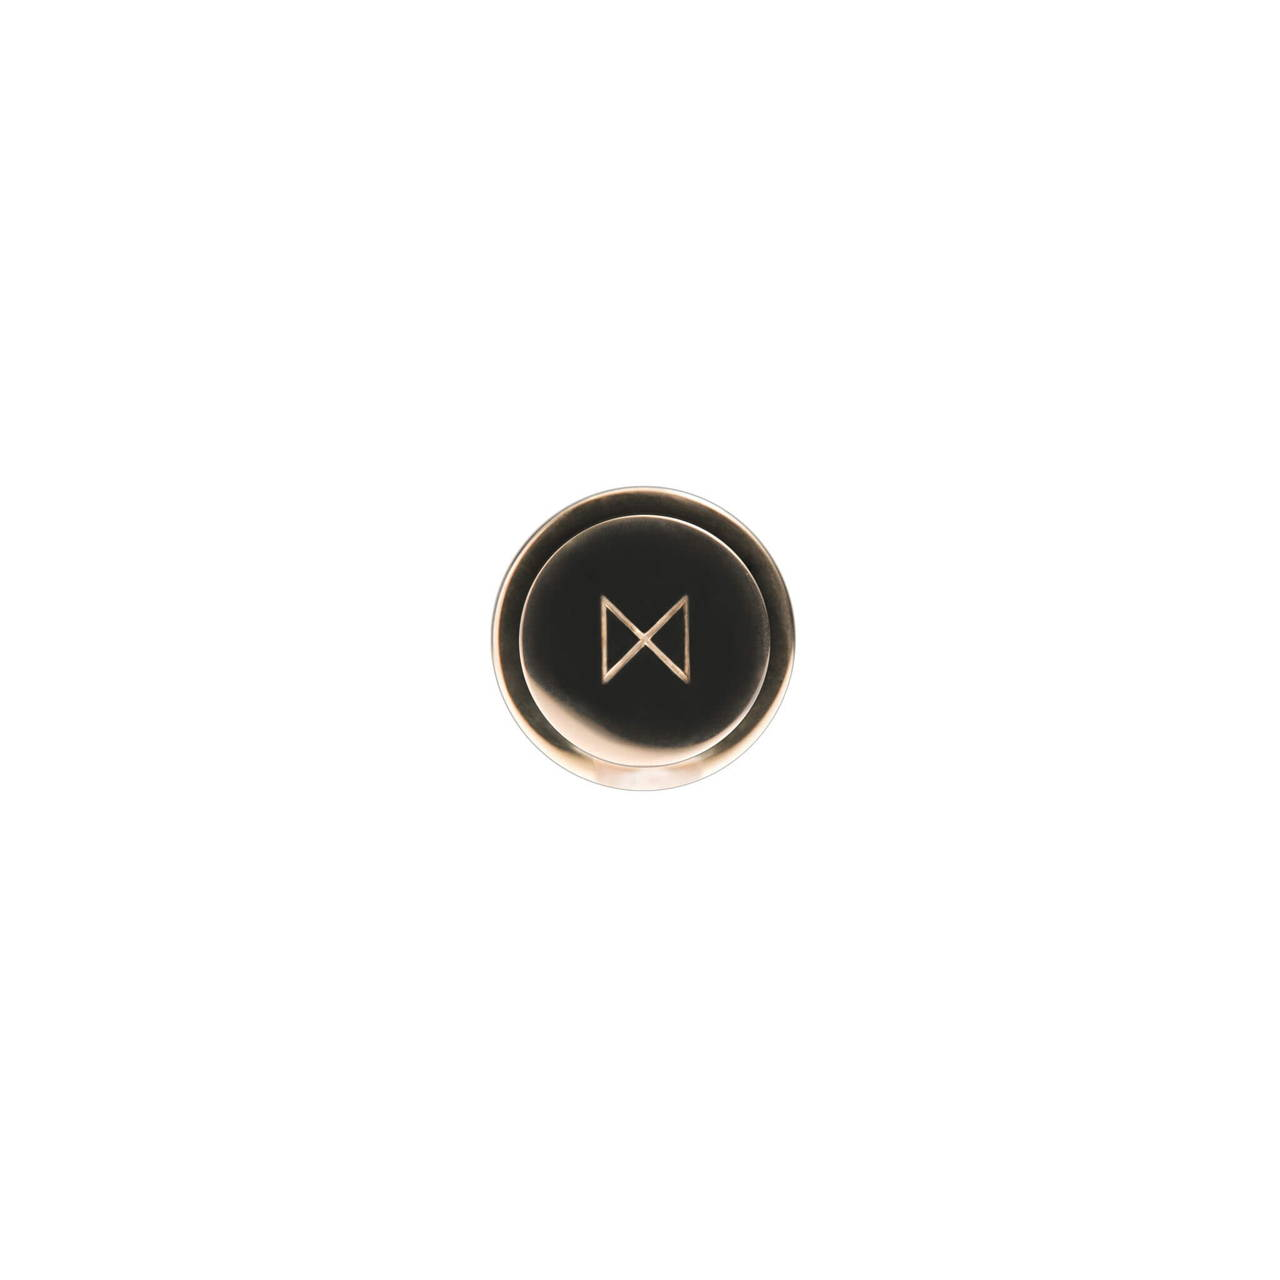 Rose Gold Cufflink bottom face with monogram